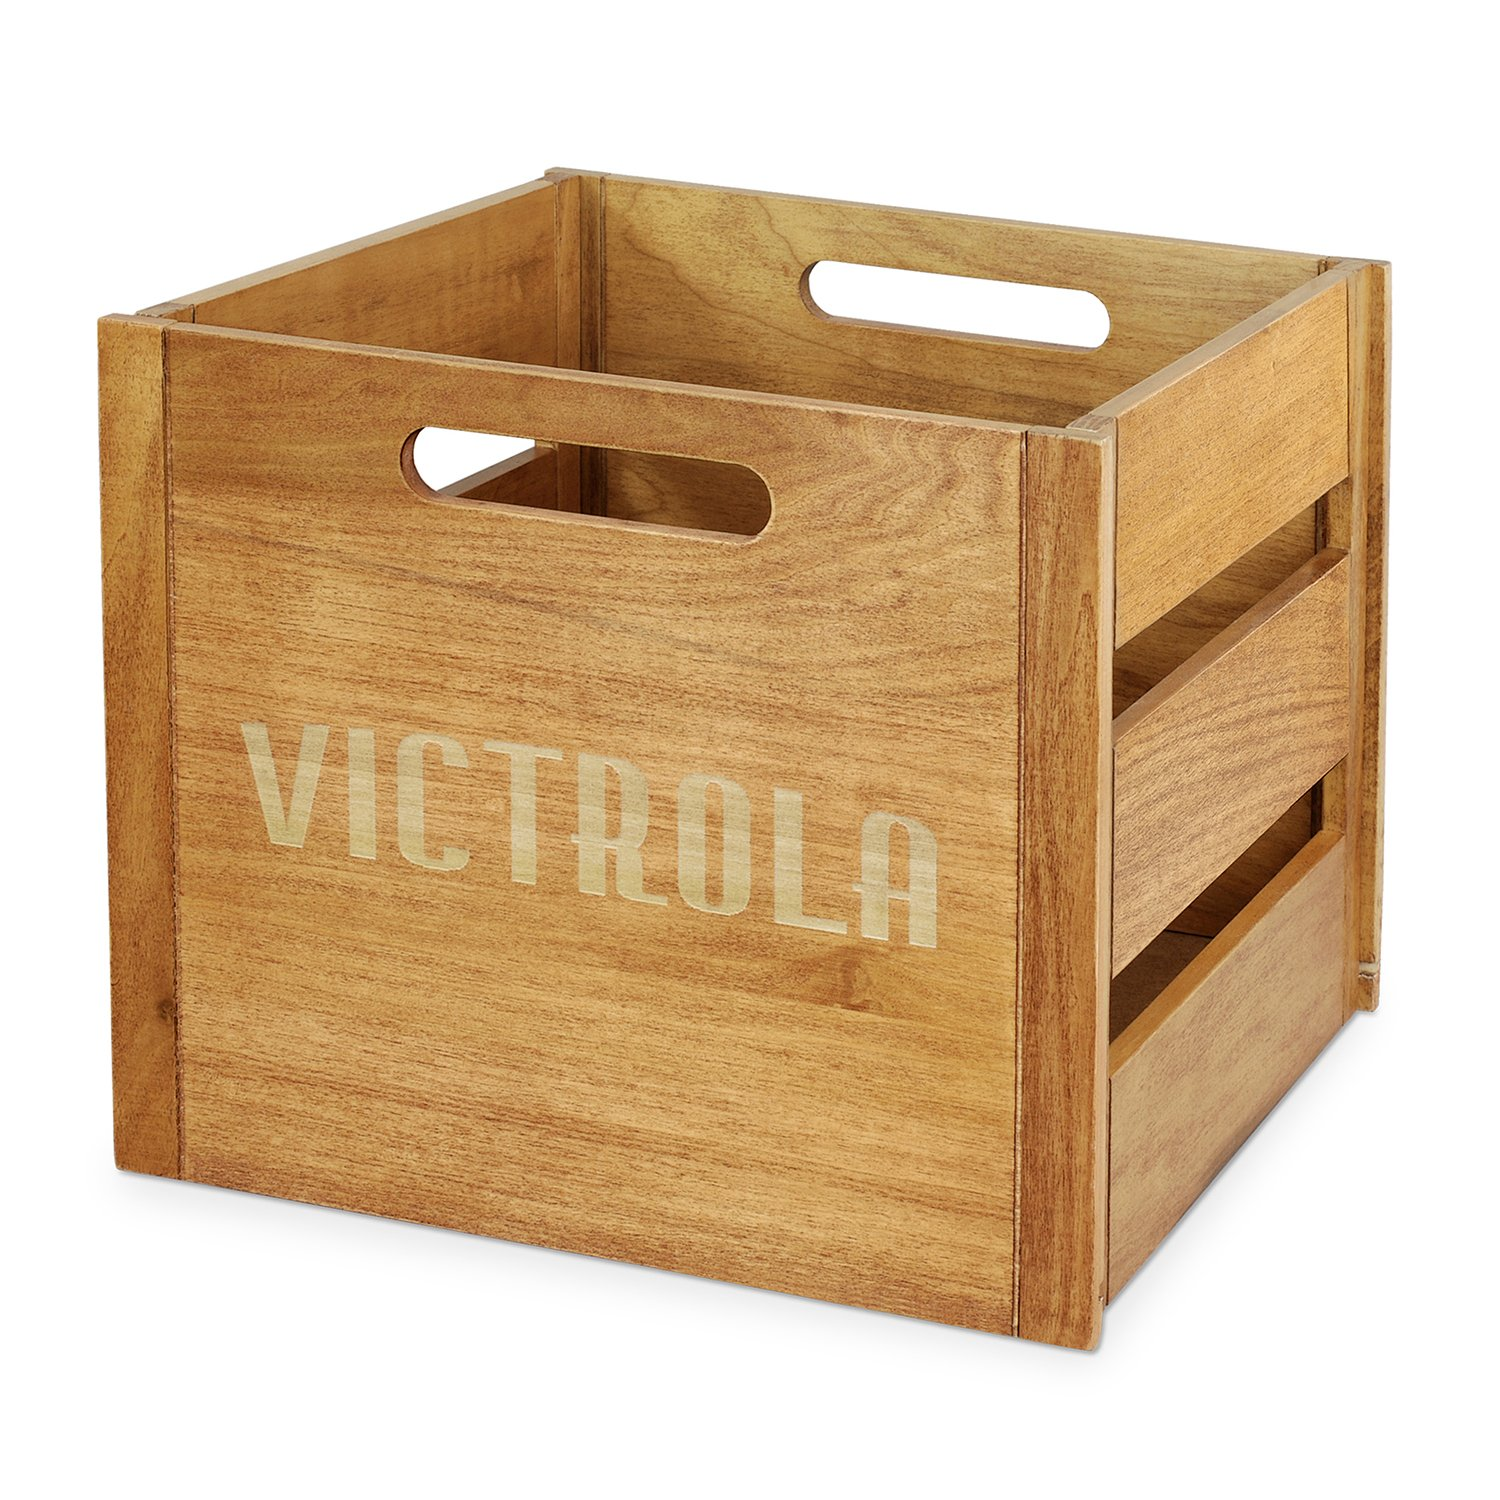 Victrola Wooden Record Crate by Victrola